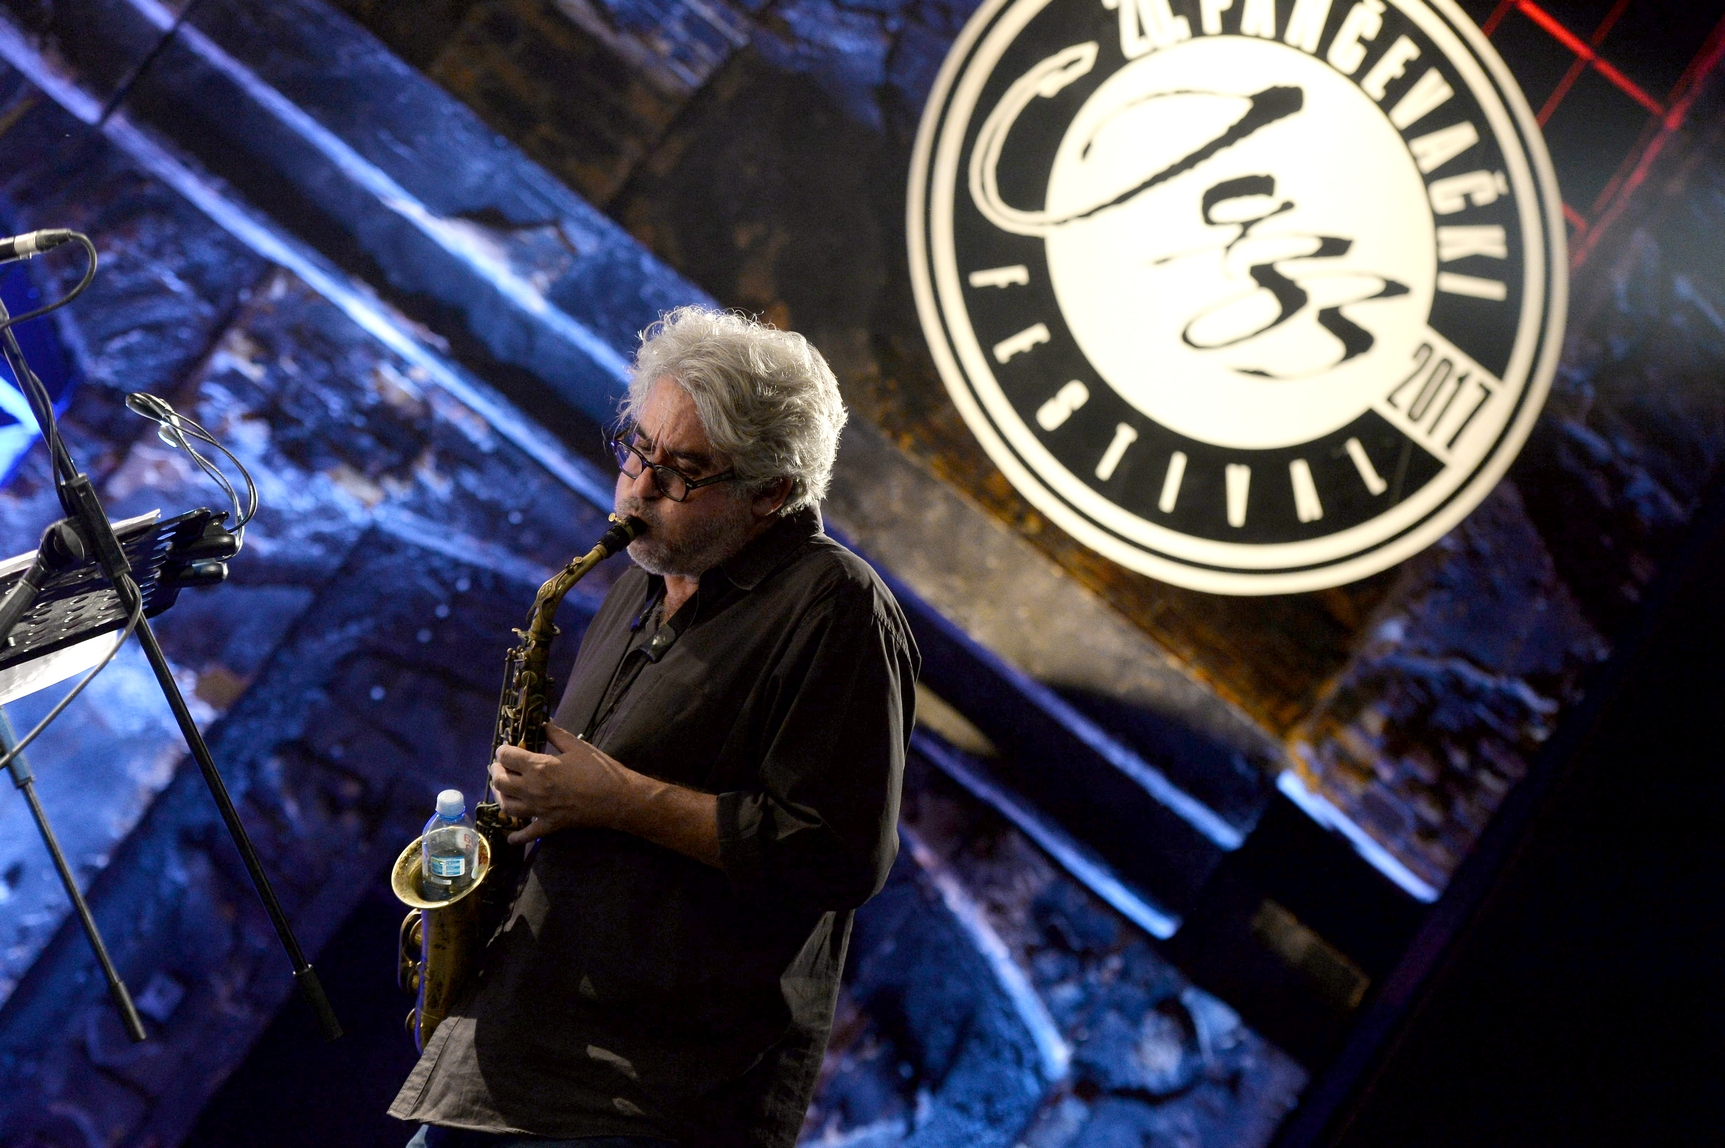 Tim Berne with his Snakeoil